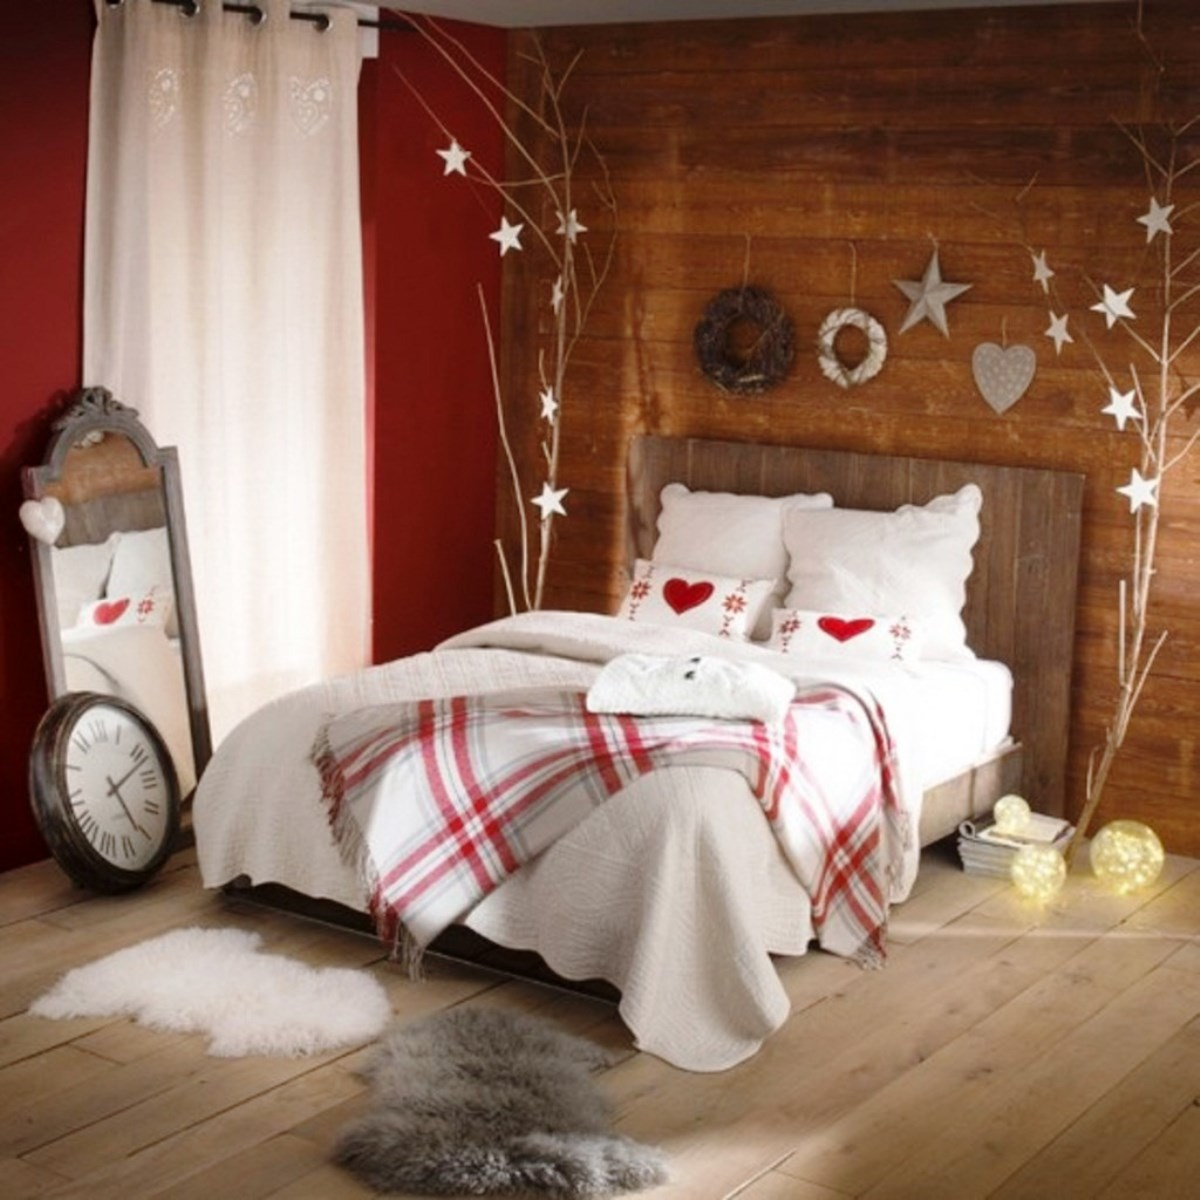 30 christmas bedroom decorations ideas for Bed room decoration ideas